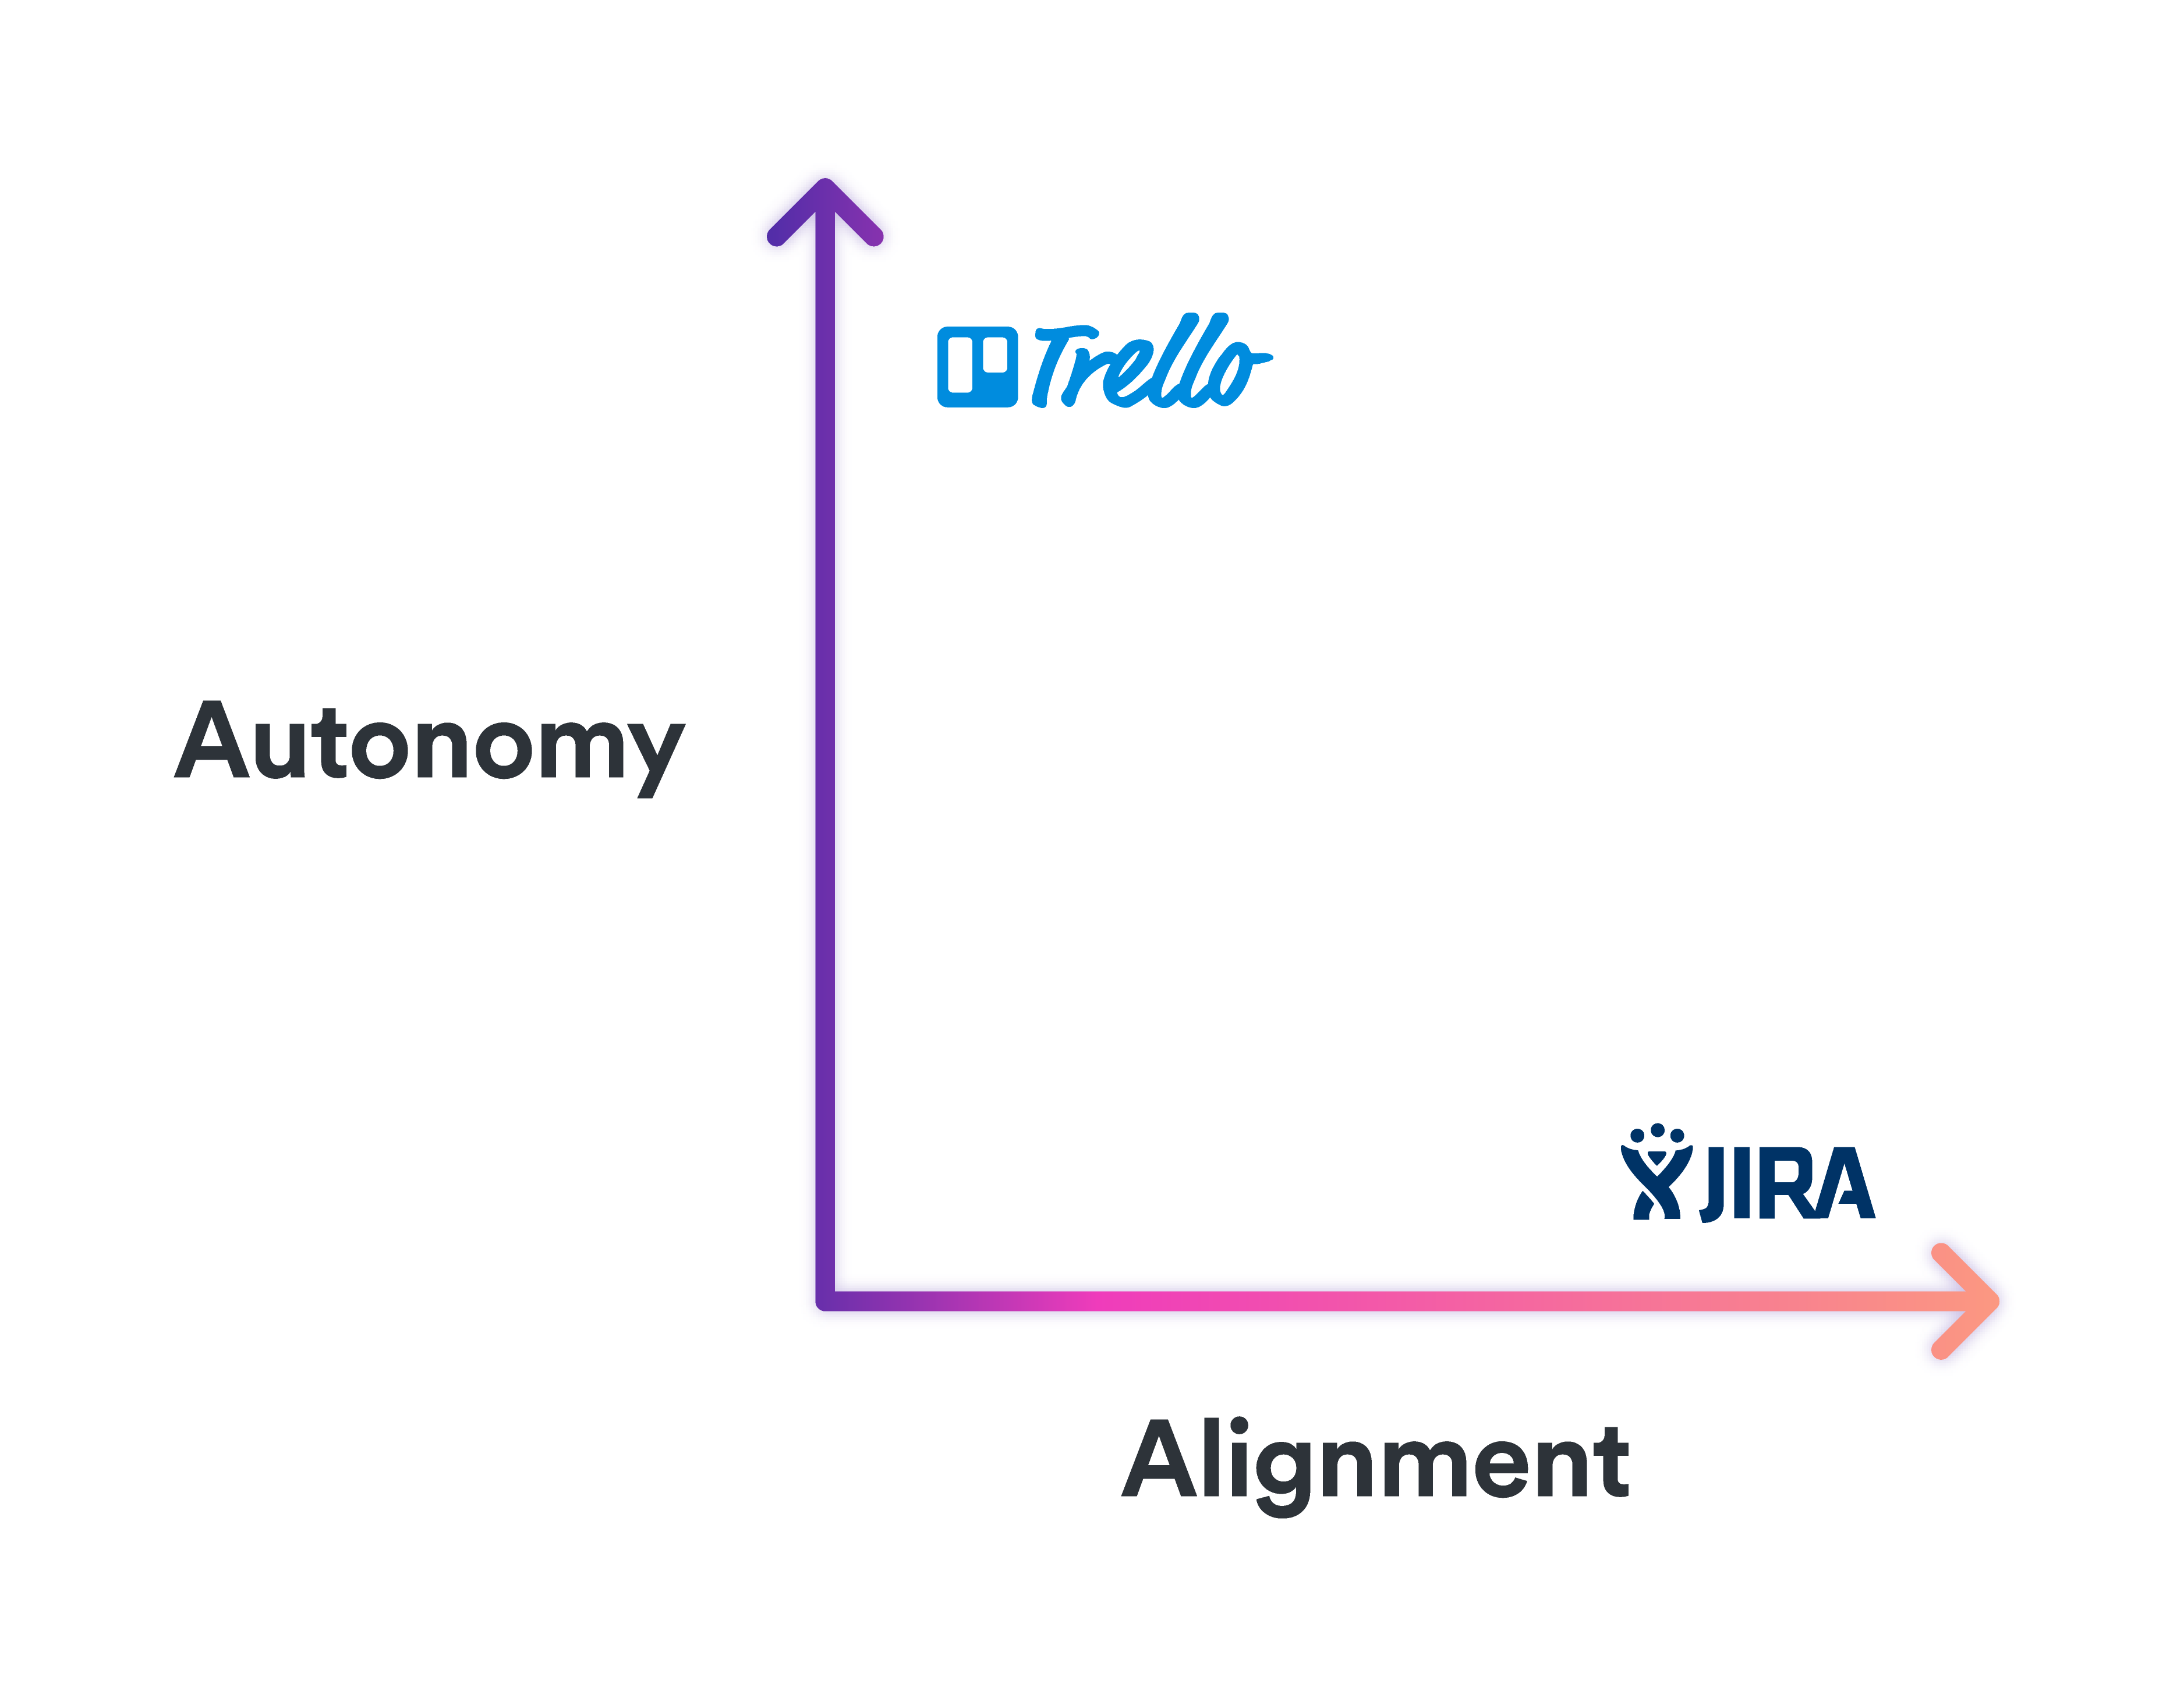 tools on the market with regard to autonomy and alignment